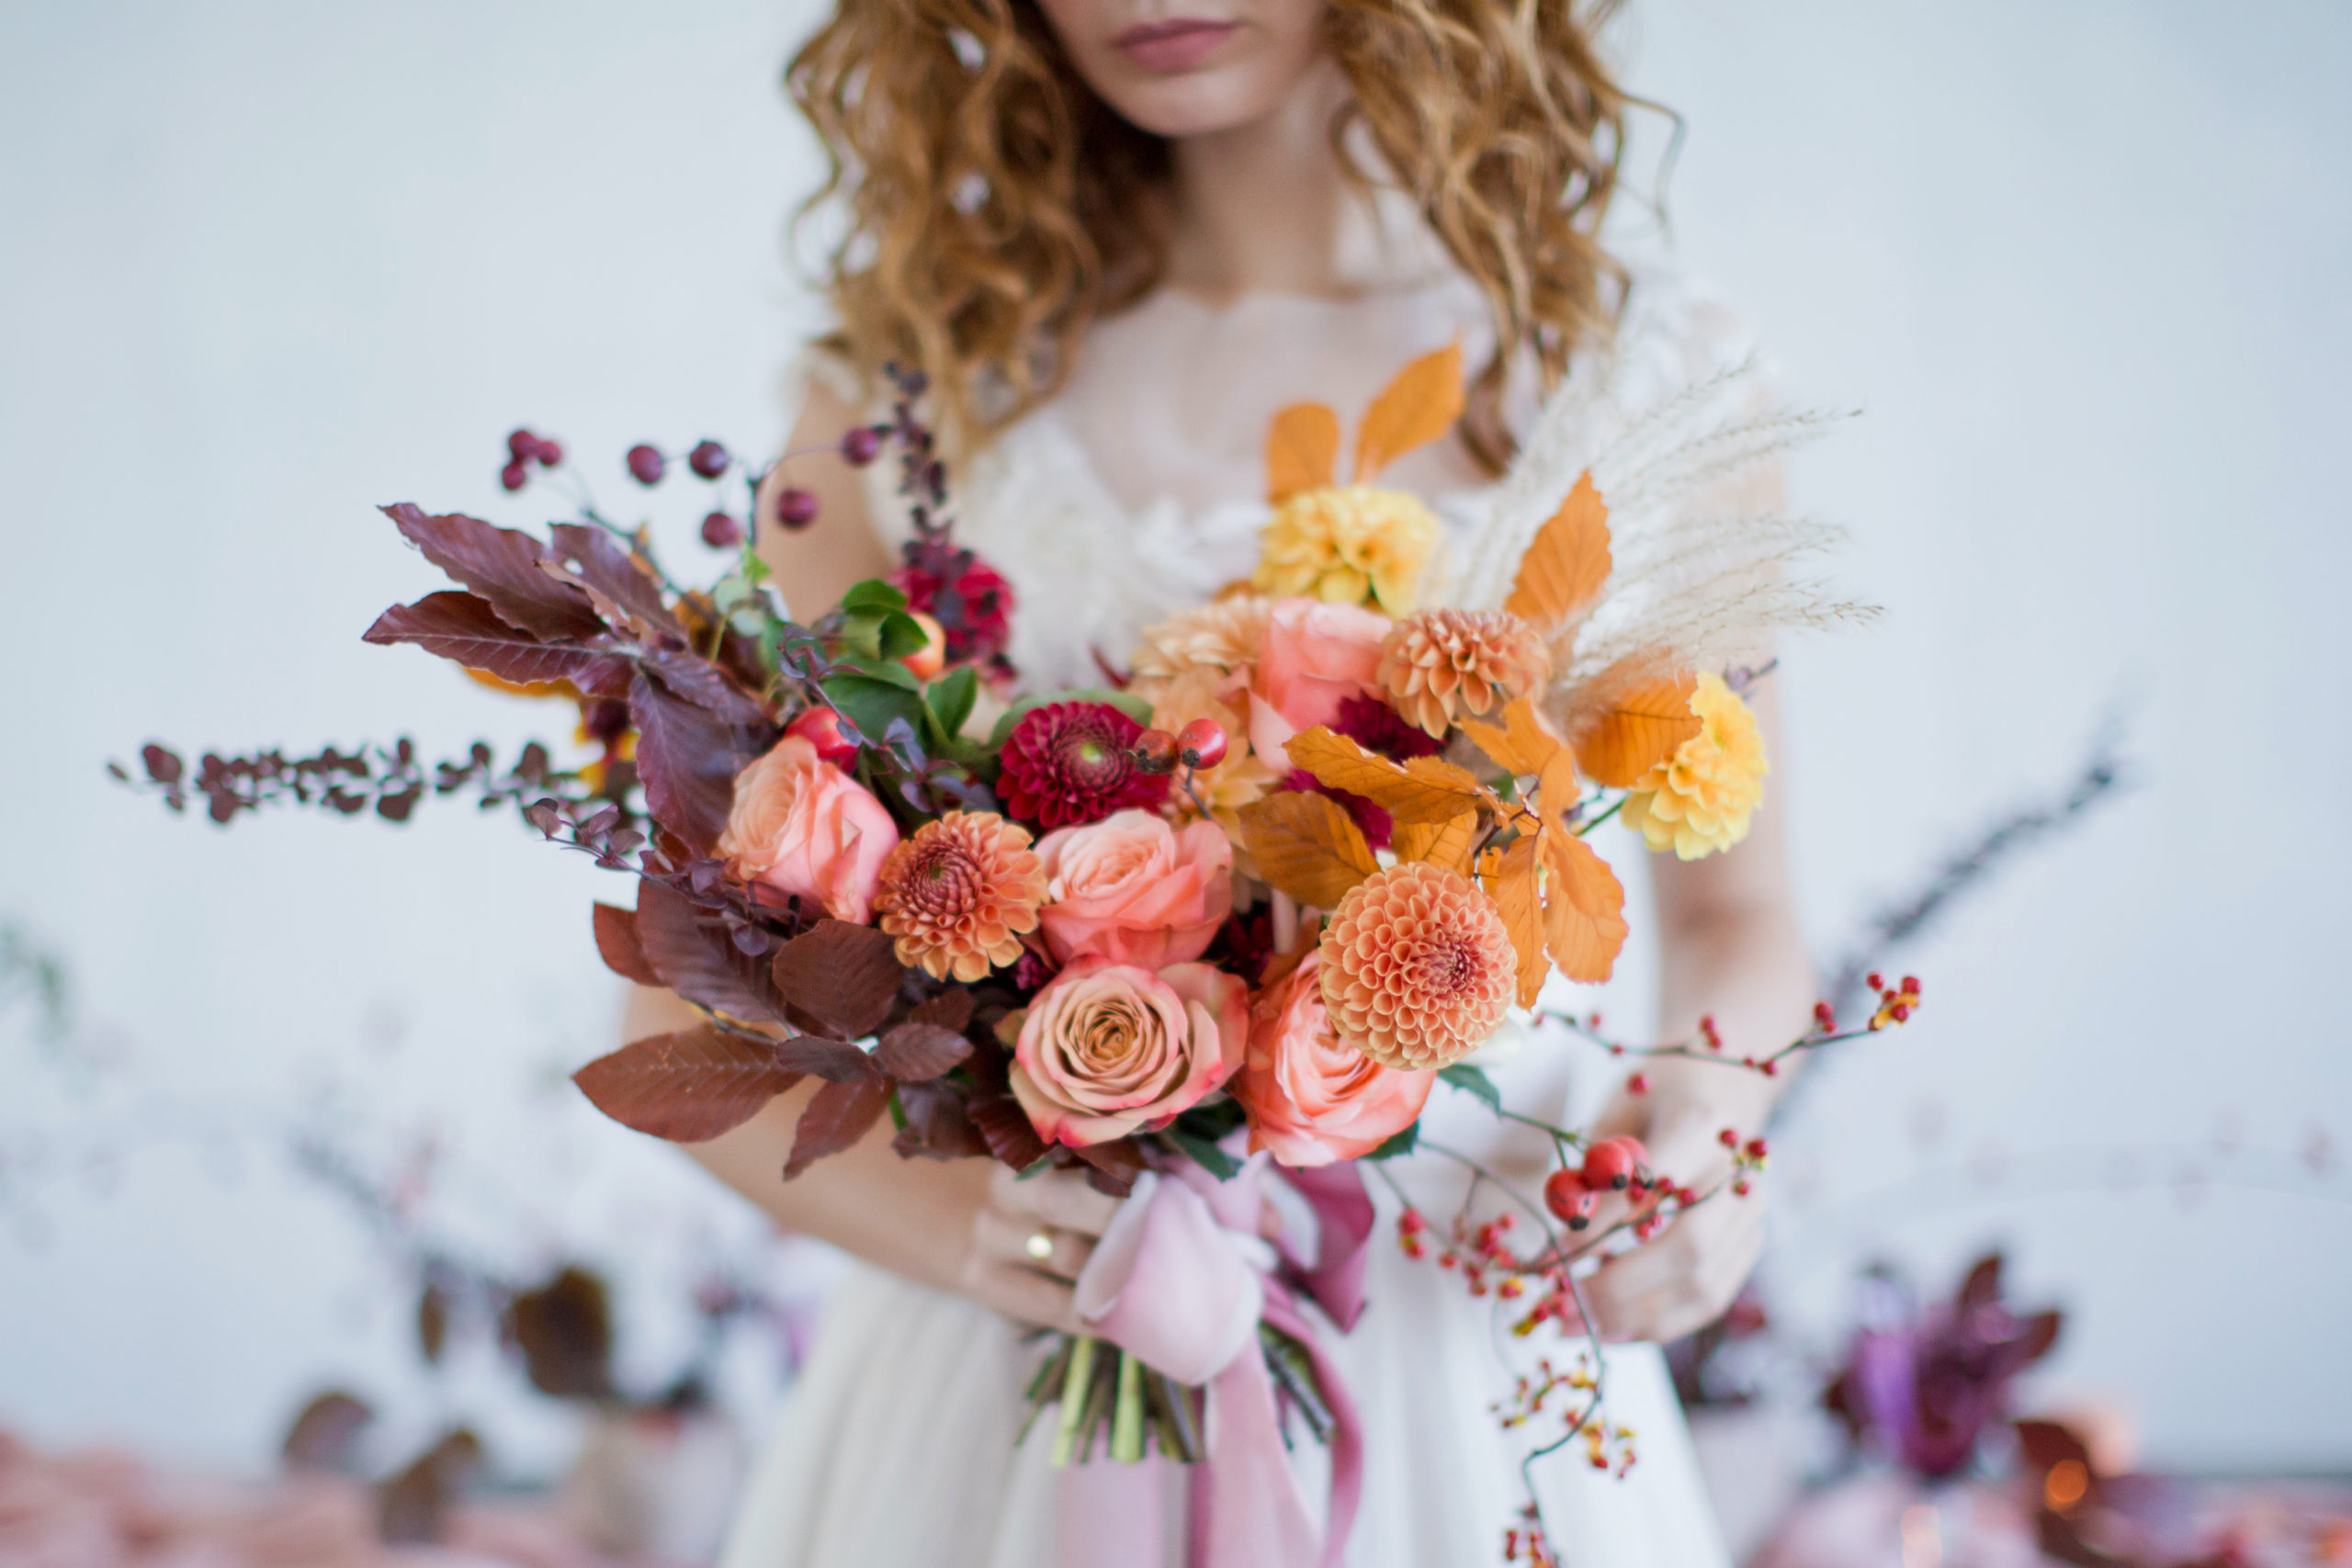 Bride holds beautiful autumn bouquet with orange and red flowers and berries. Autumn bouquet with ribbons in bride's hands